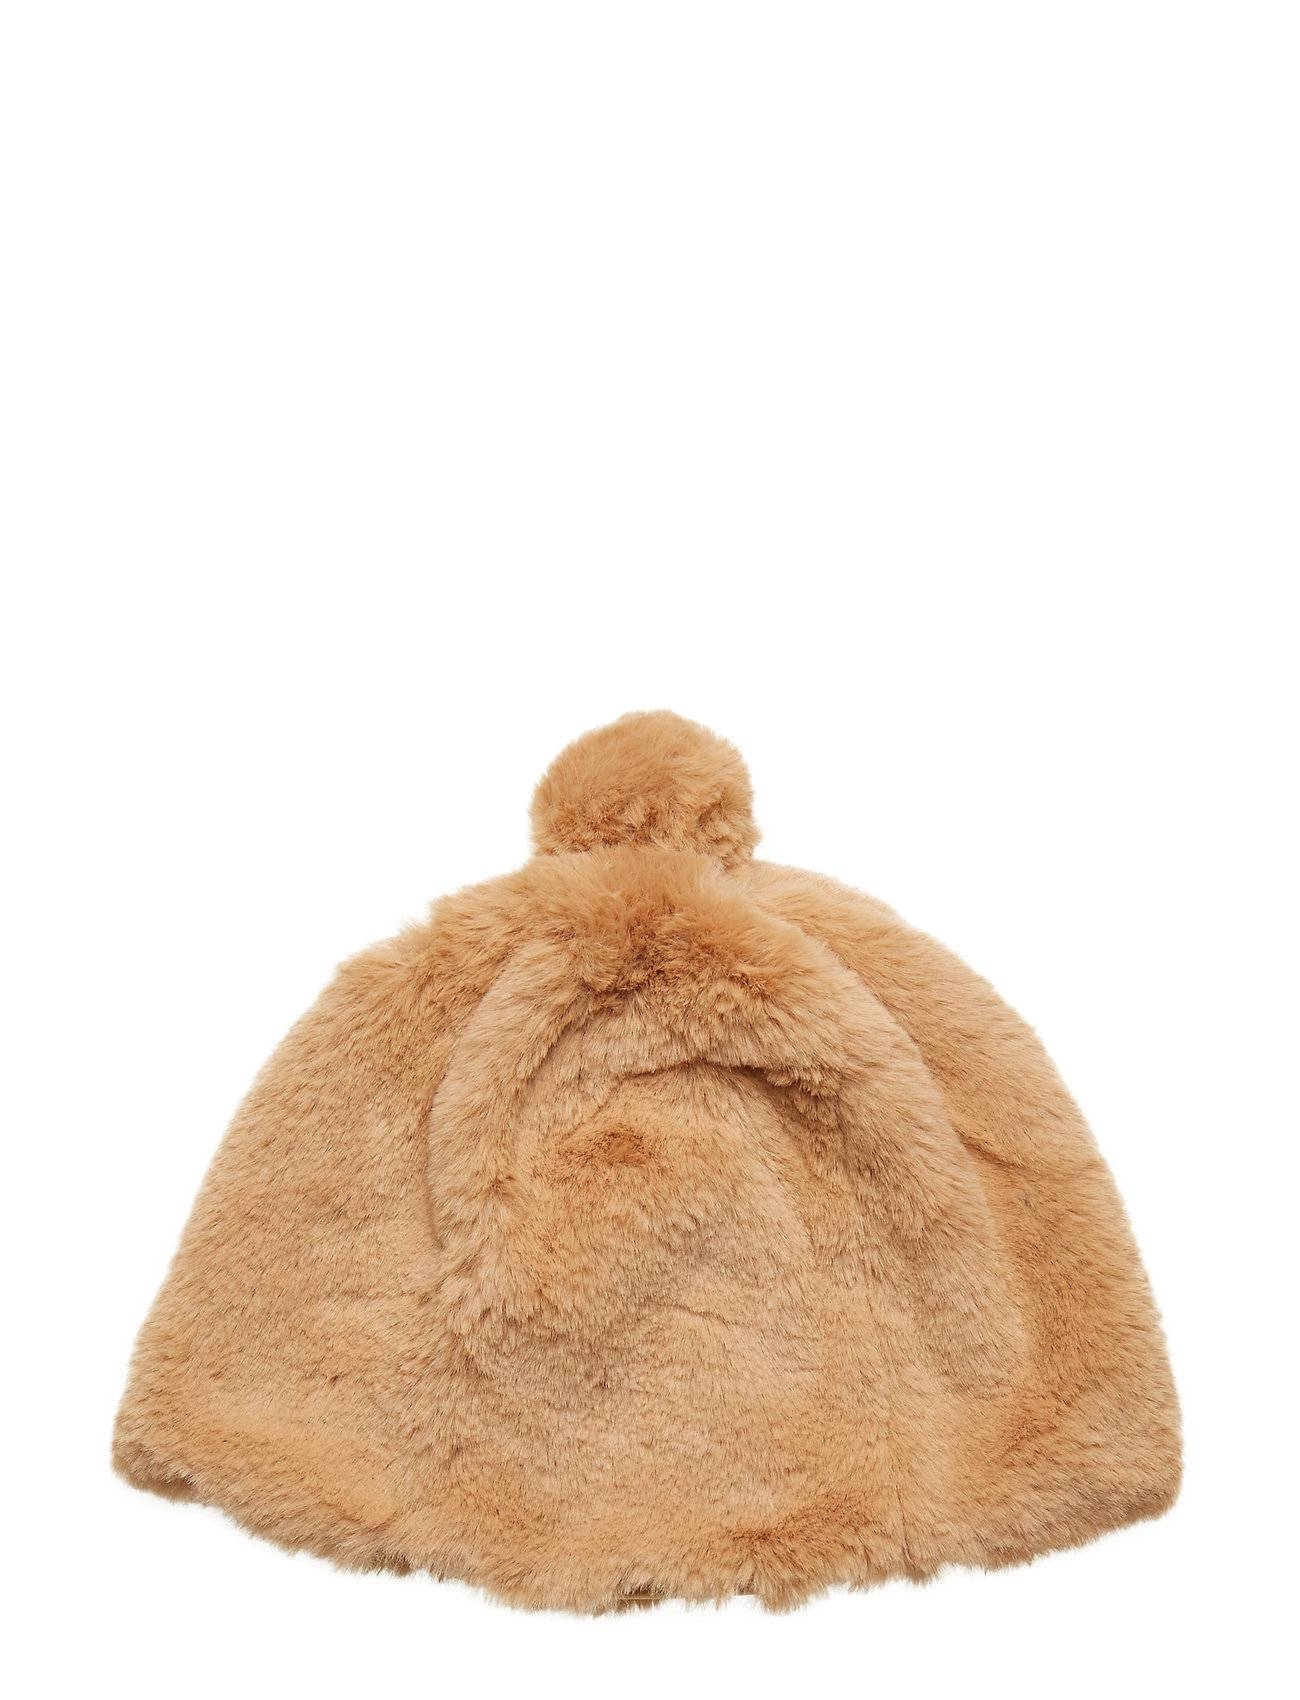 Lexington Clothing Colette Faux Fur Beanie